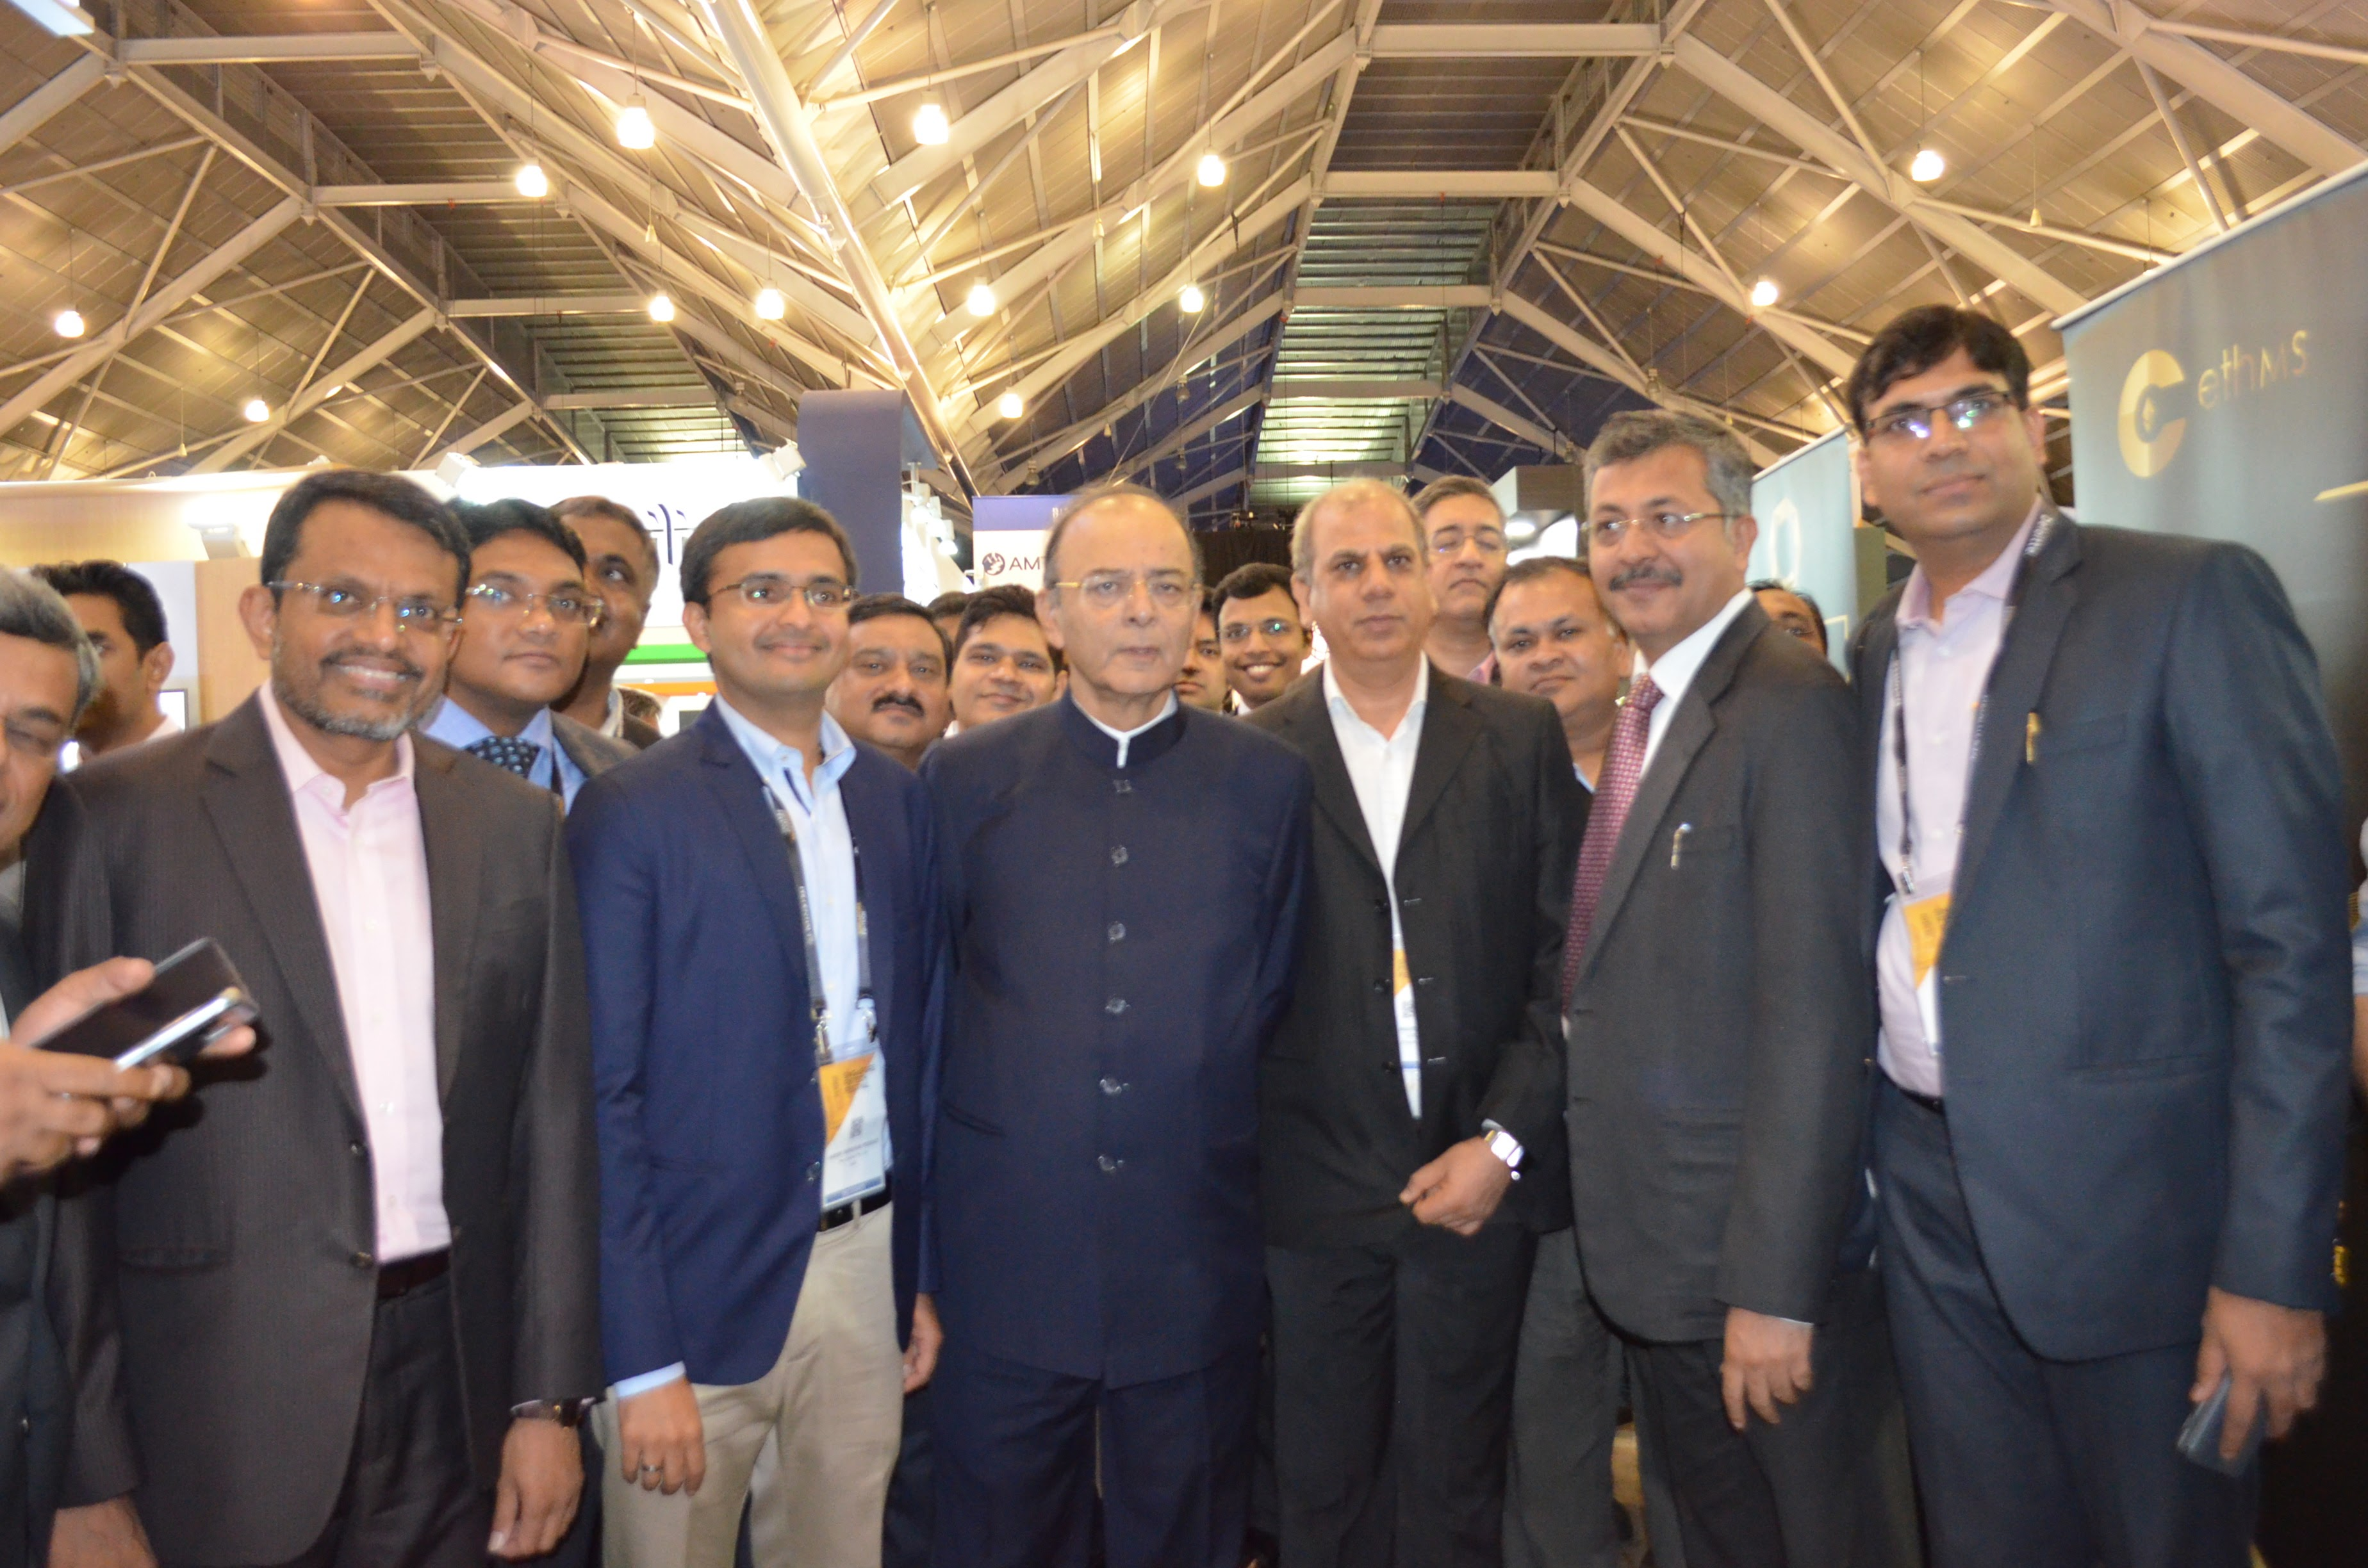 Managing Director of MAS, Ravi Menon (extreme left) along with Indian Finance Minister Arun Jaitley at the Singapore Fintech Festival.